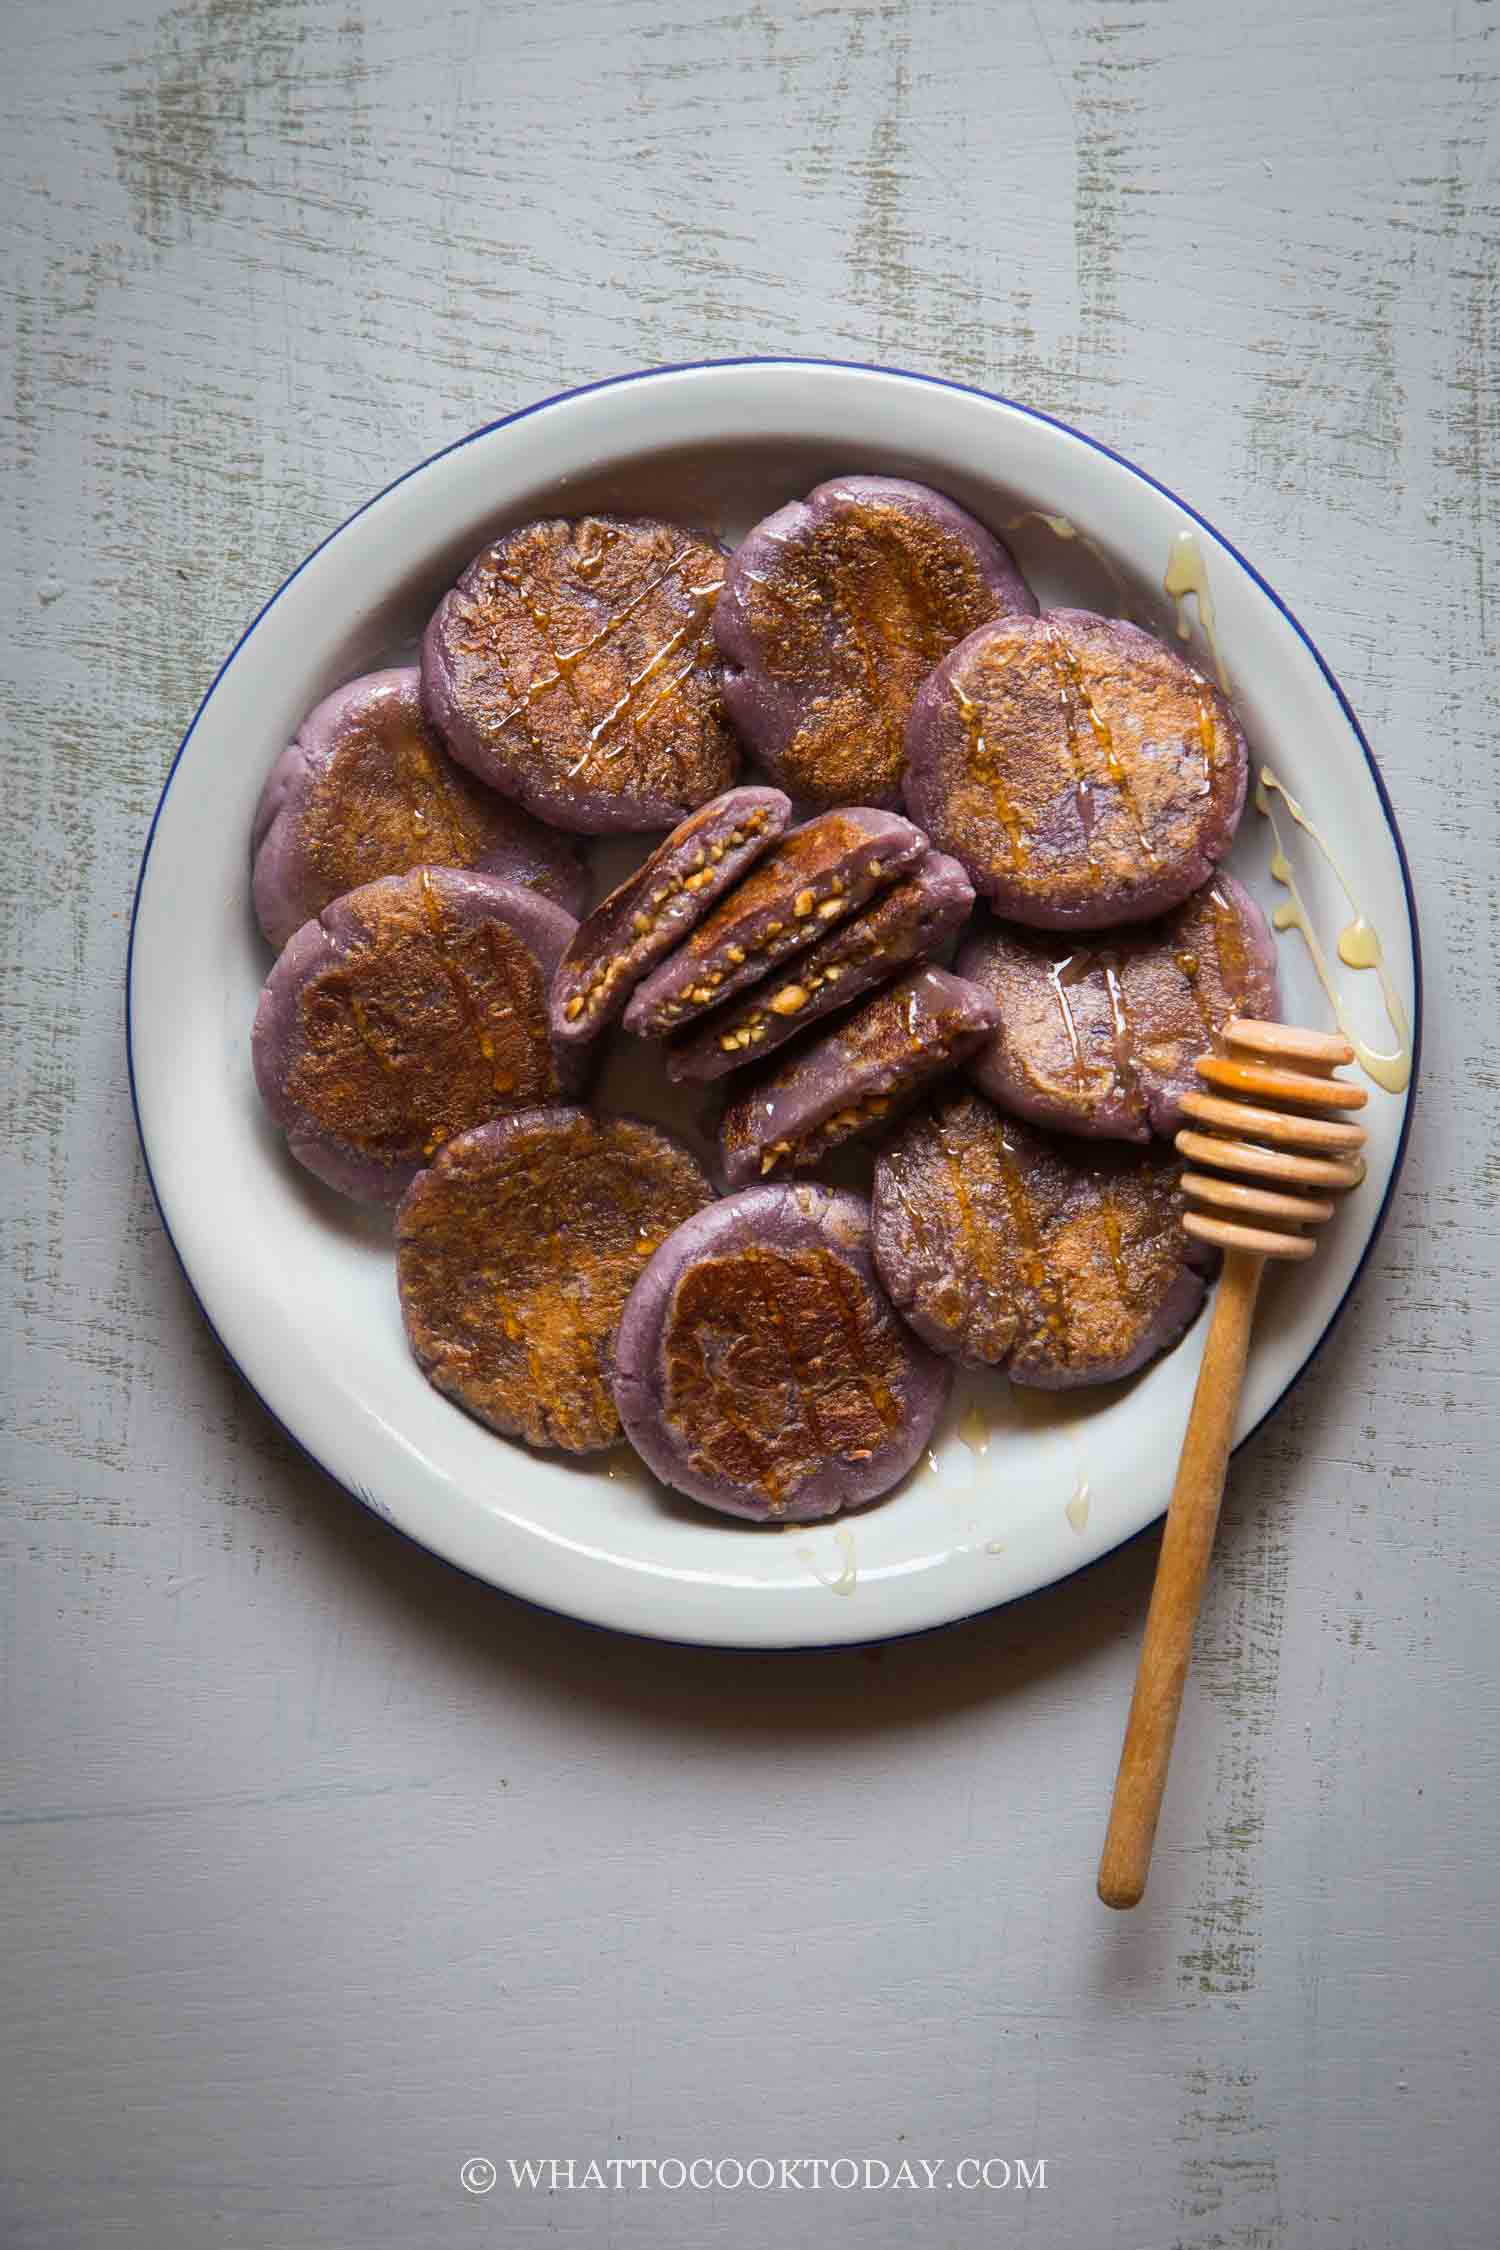 Purple Sweet Potato Mochi Cakes with Peanut Fillings